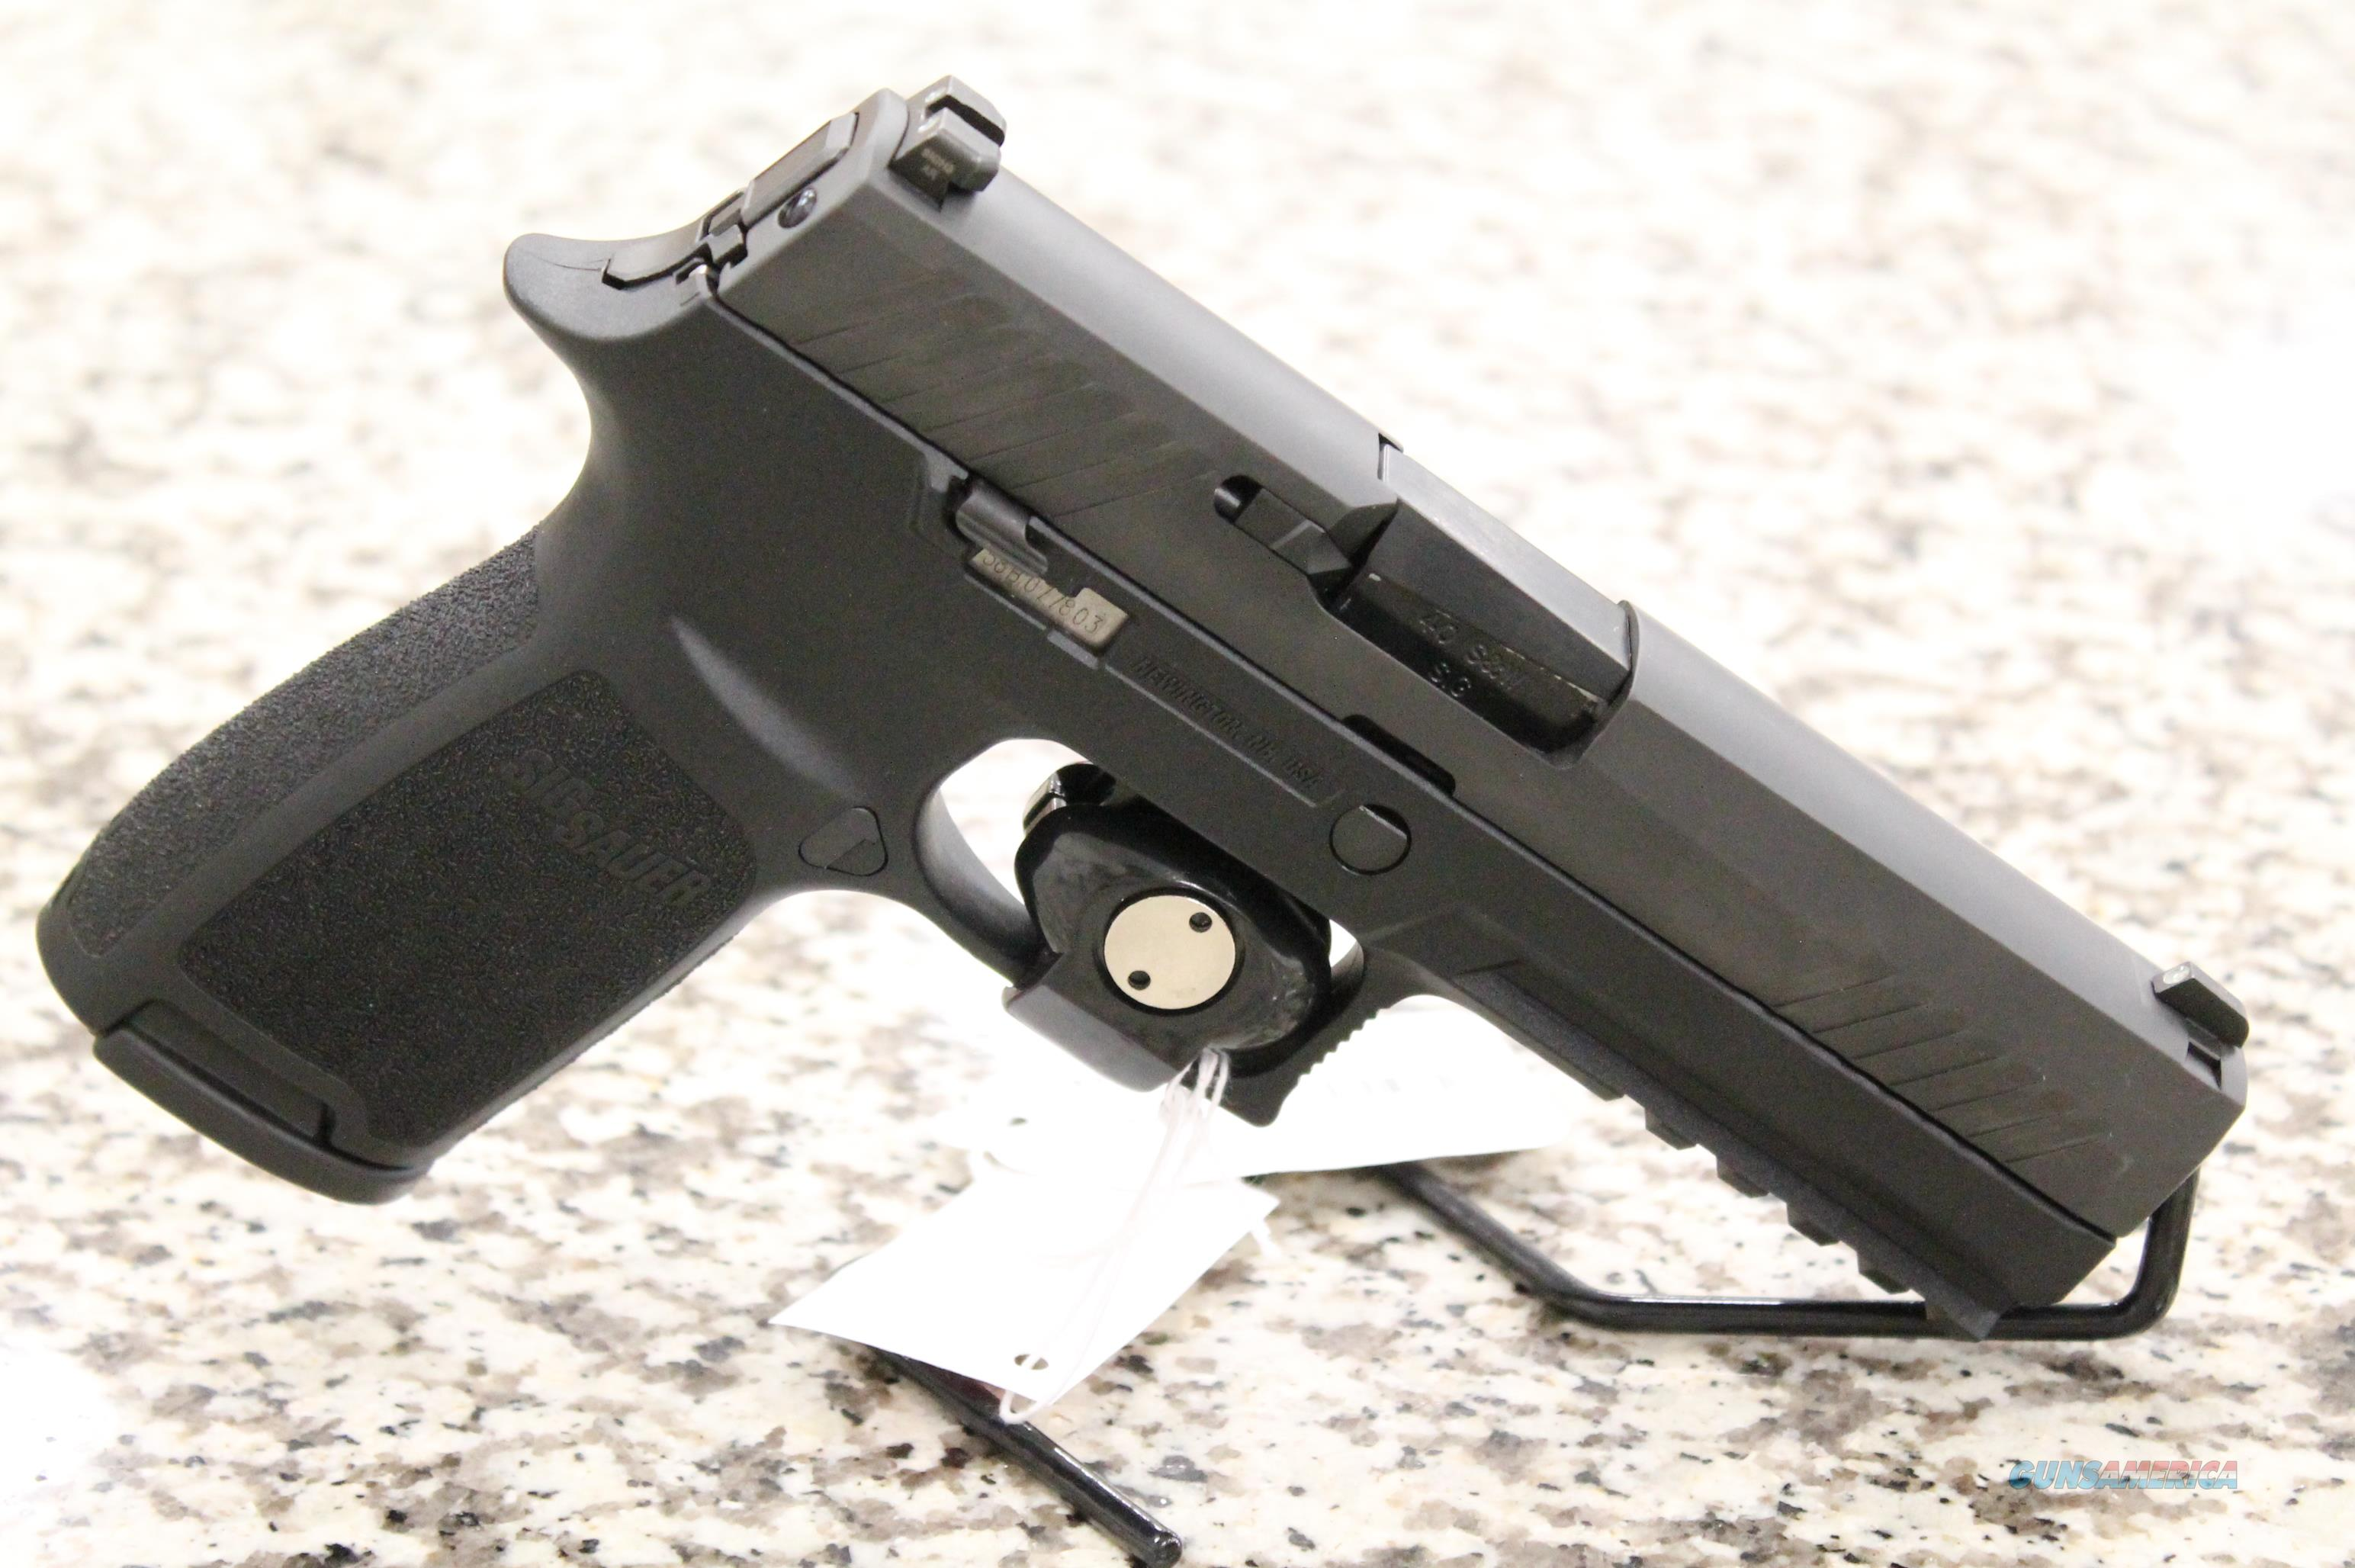 Sig Sauer P320 Full Size .40 S&W Pistol + 2 Mags  Guns > Pistols > Sig - Sauer/Sigarms Pistols > P320